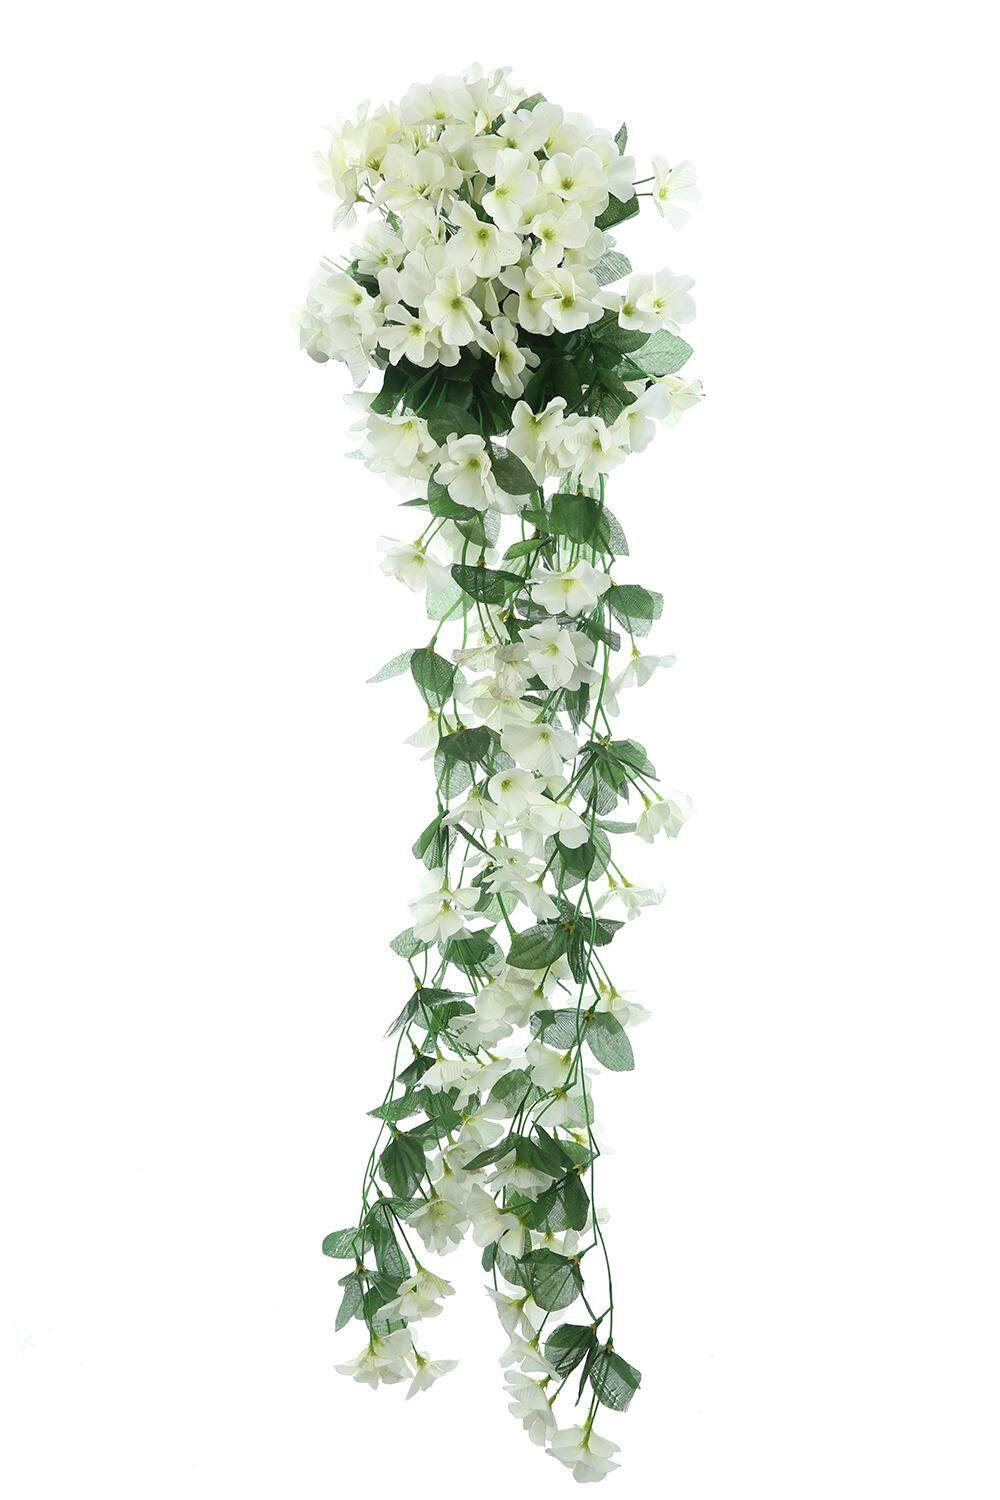 yiokmty Leafy Violet Artificial Silk Flowers for Wedding Home Decor Wall Fake DIY Bouquet,White - intl